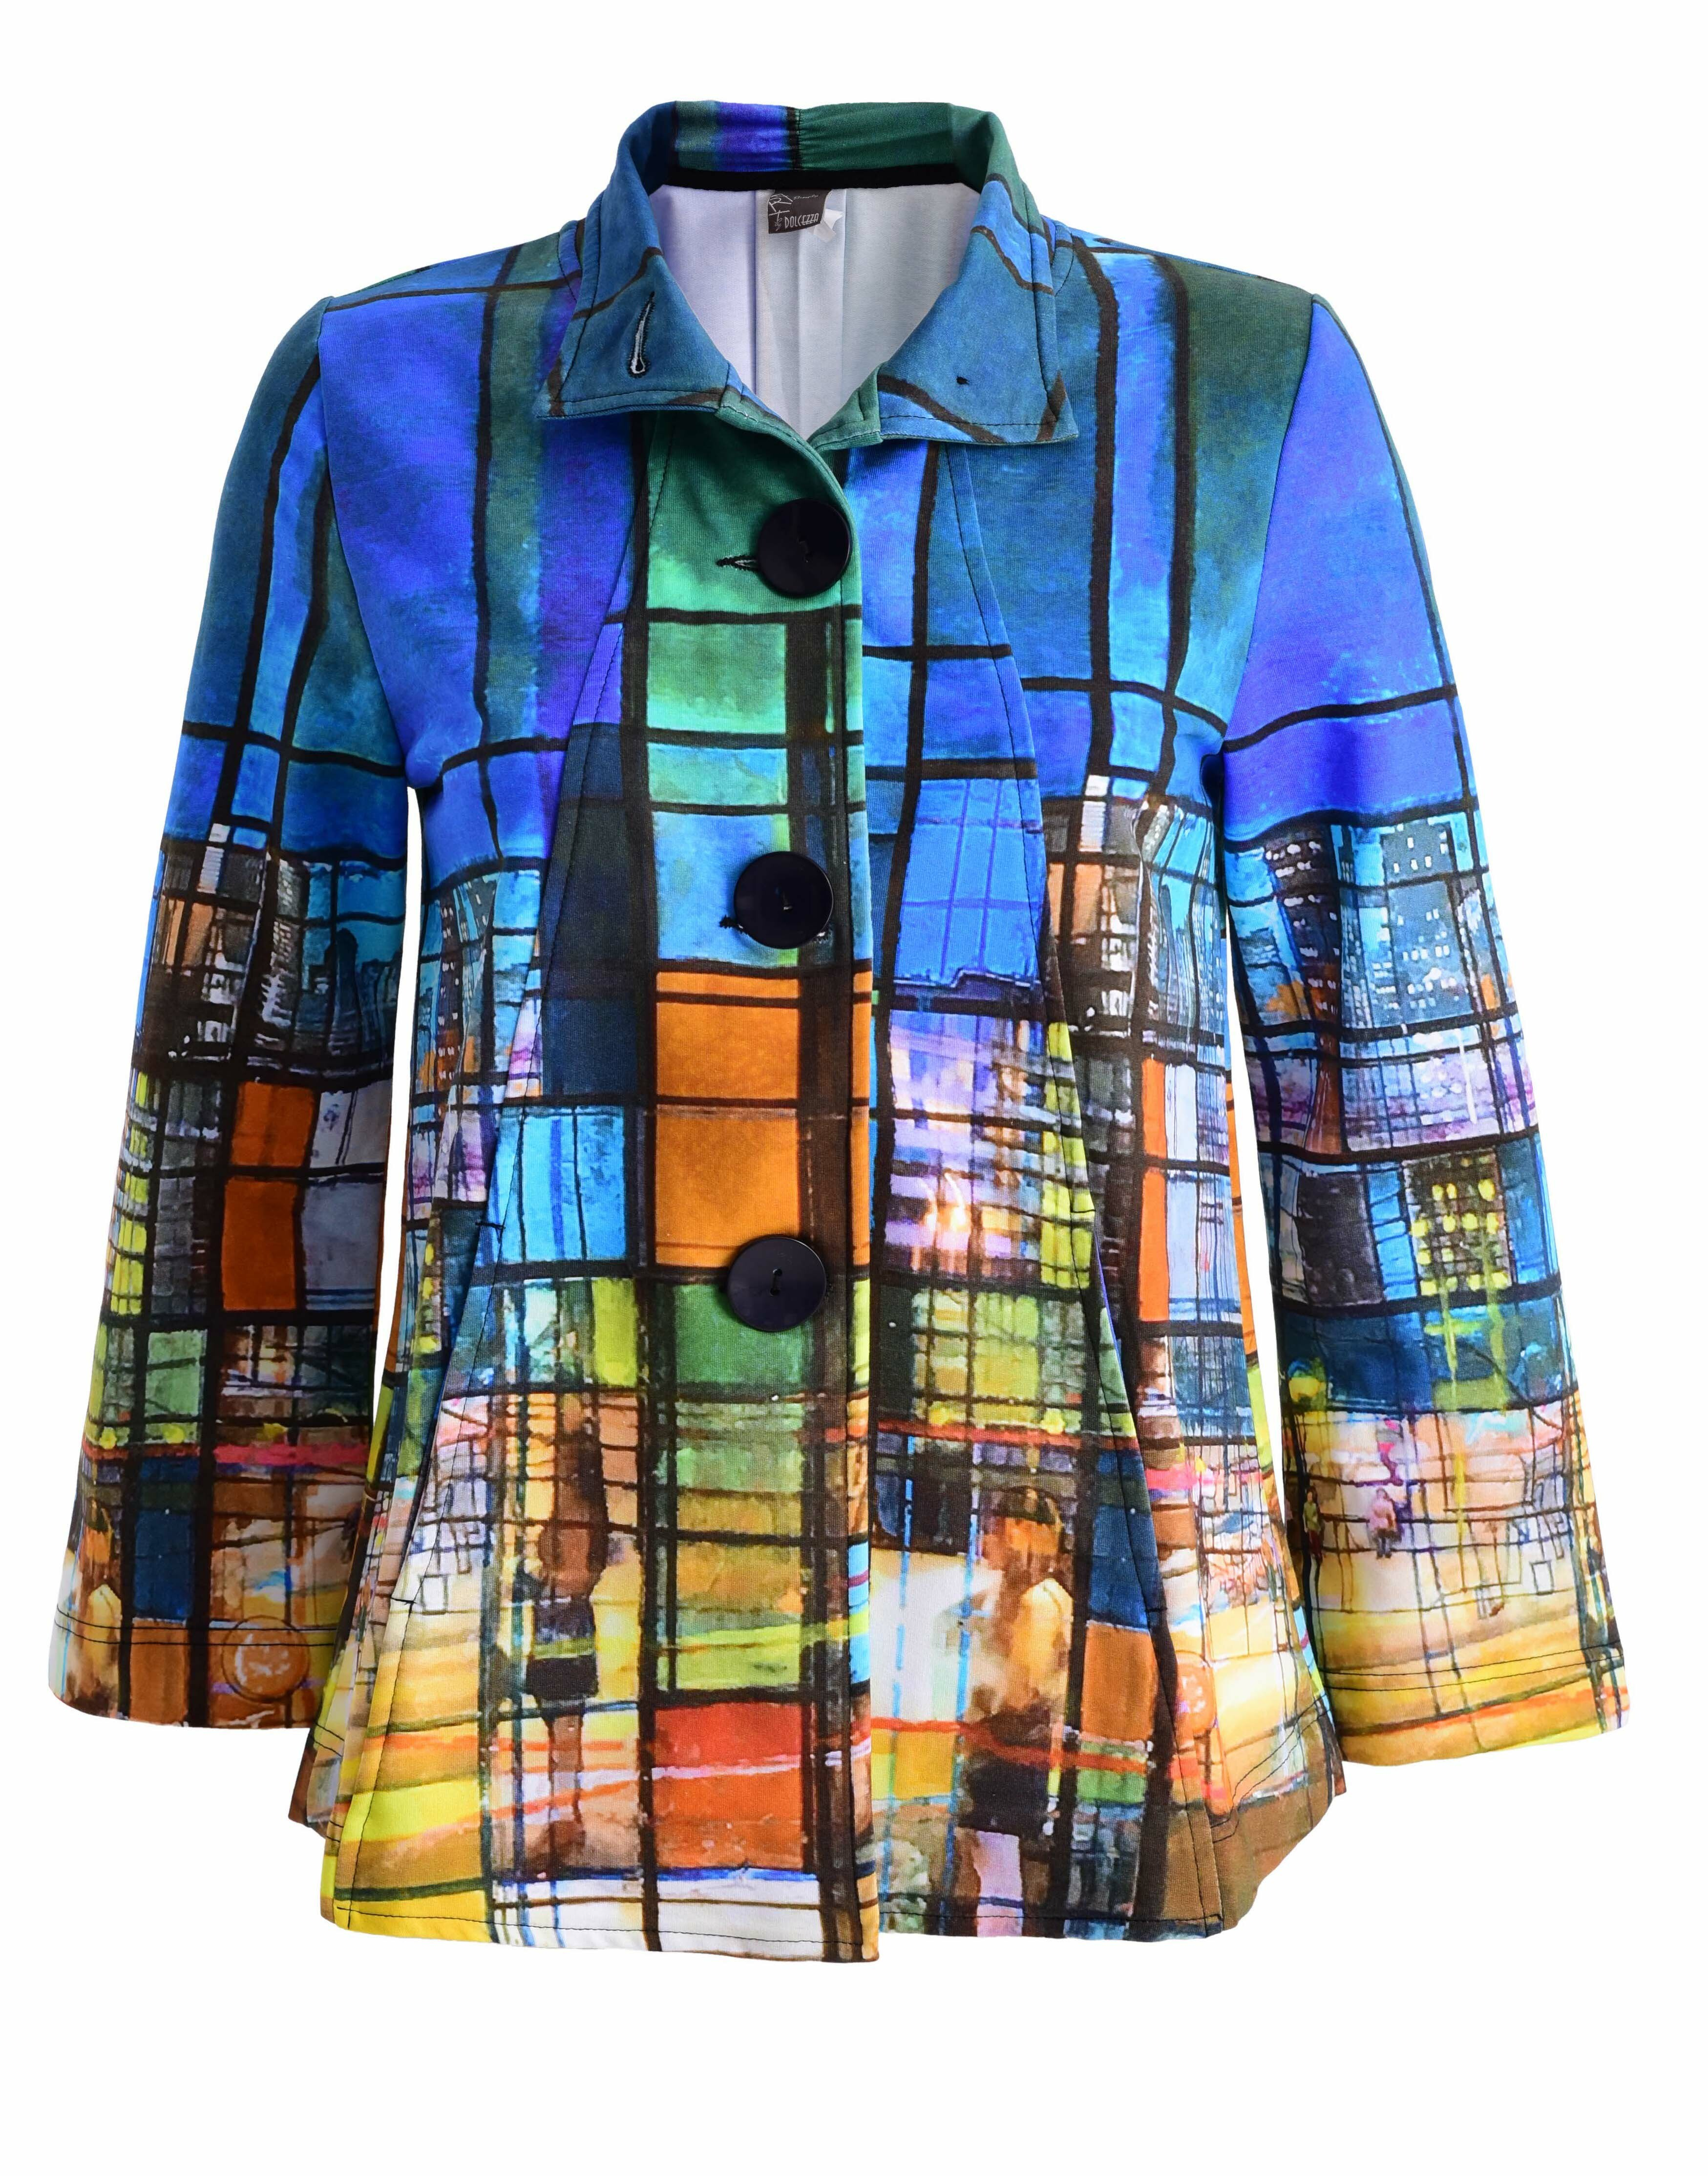 Simply Art Dolcezza: Colors Of Ville La Nuit Abstract Art Swing Coat (1 Left!) Dolcezza_SimplyArt_59717